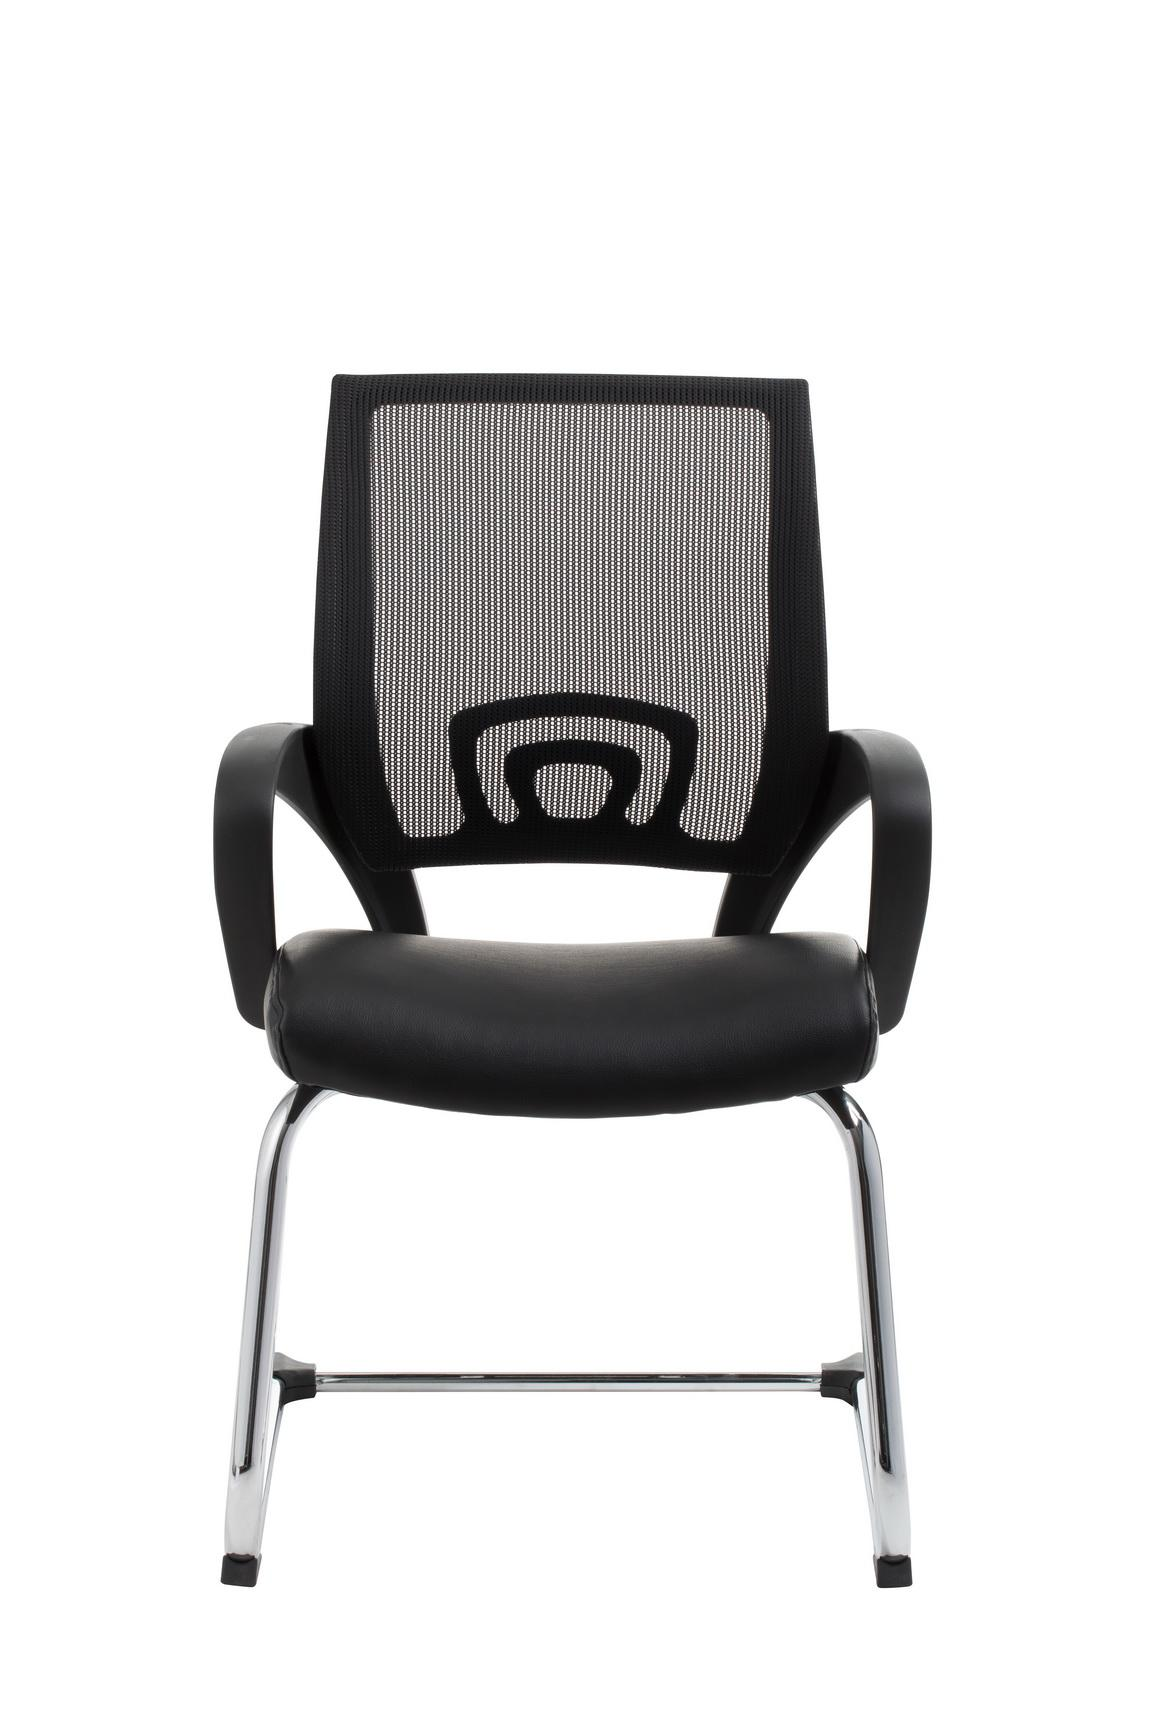 Dash Visitor Chair Office Furniture Store Office